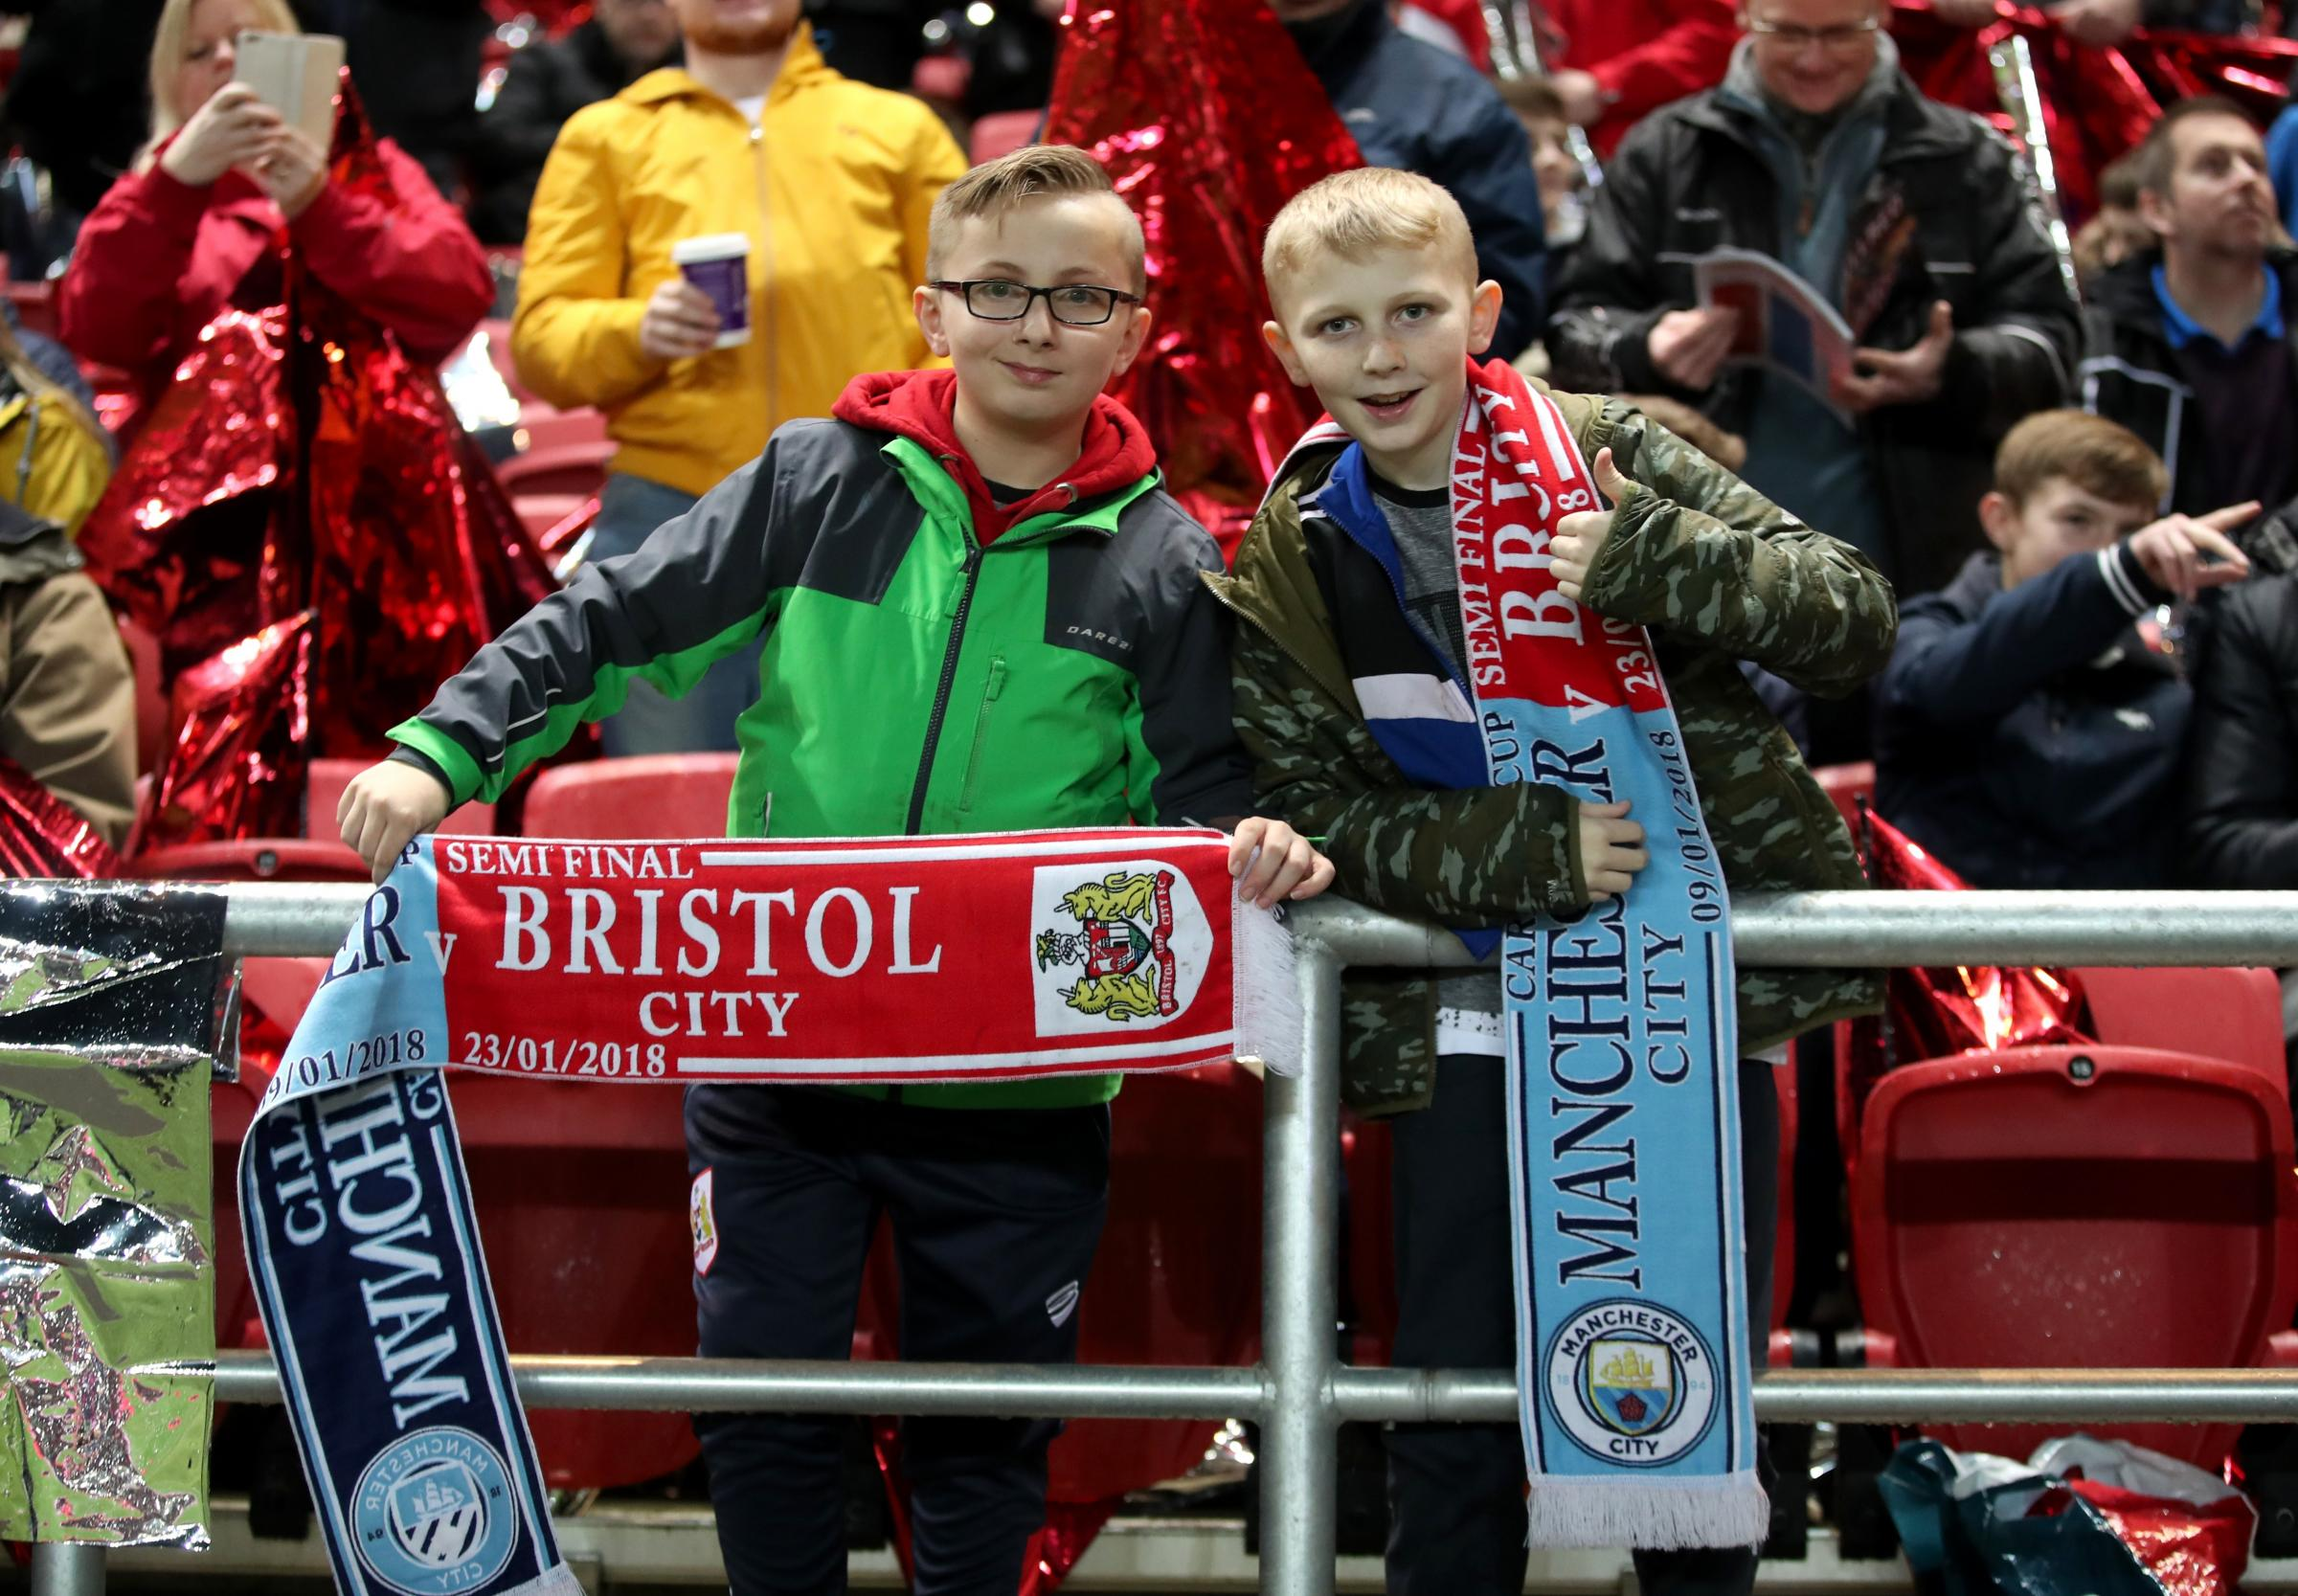 TRUE COLOURS? The modern phenomena of half-and-half scarves was in full flow at Ashton Gate on Tuesday night